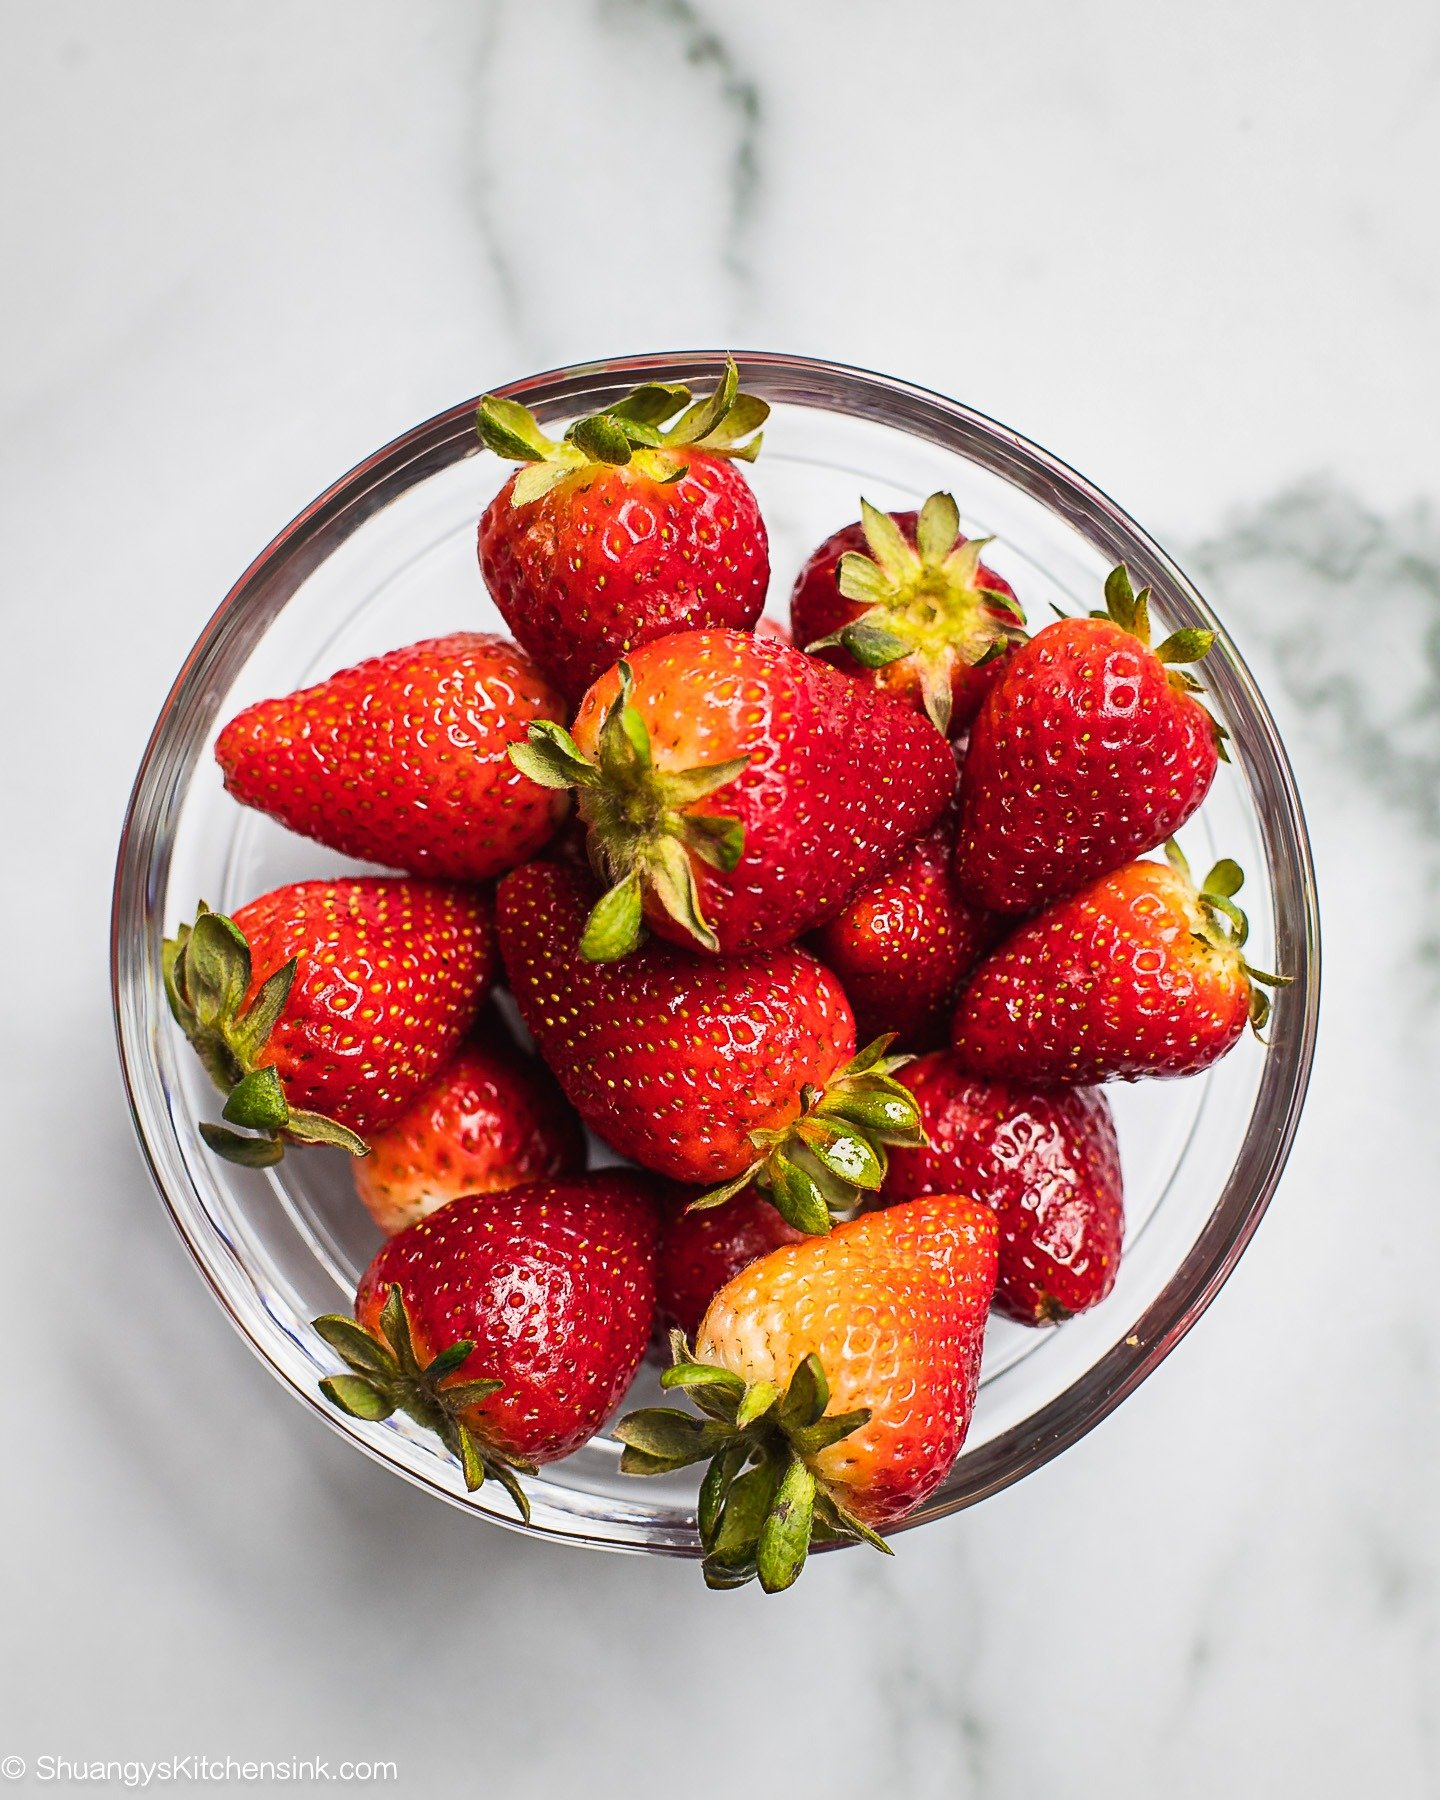 A bowl of fresh and vibrant strawberries.